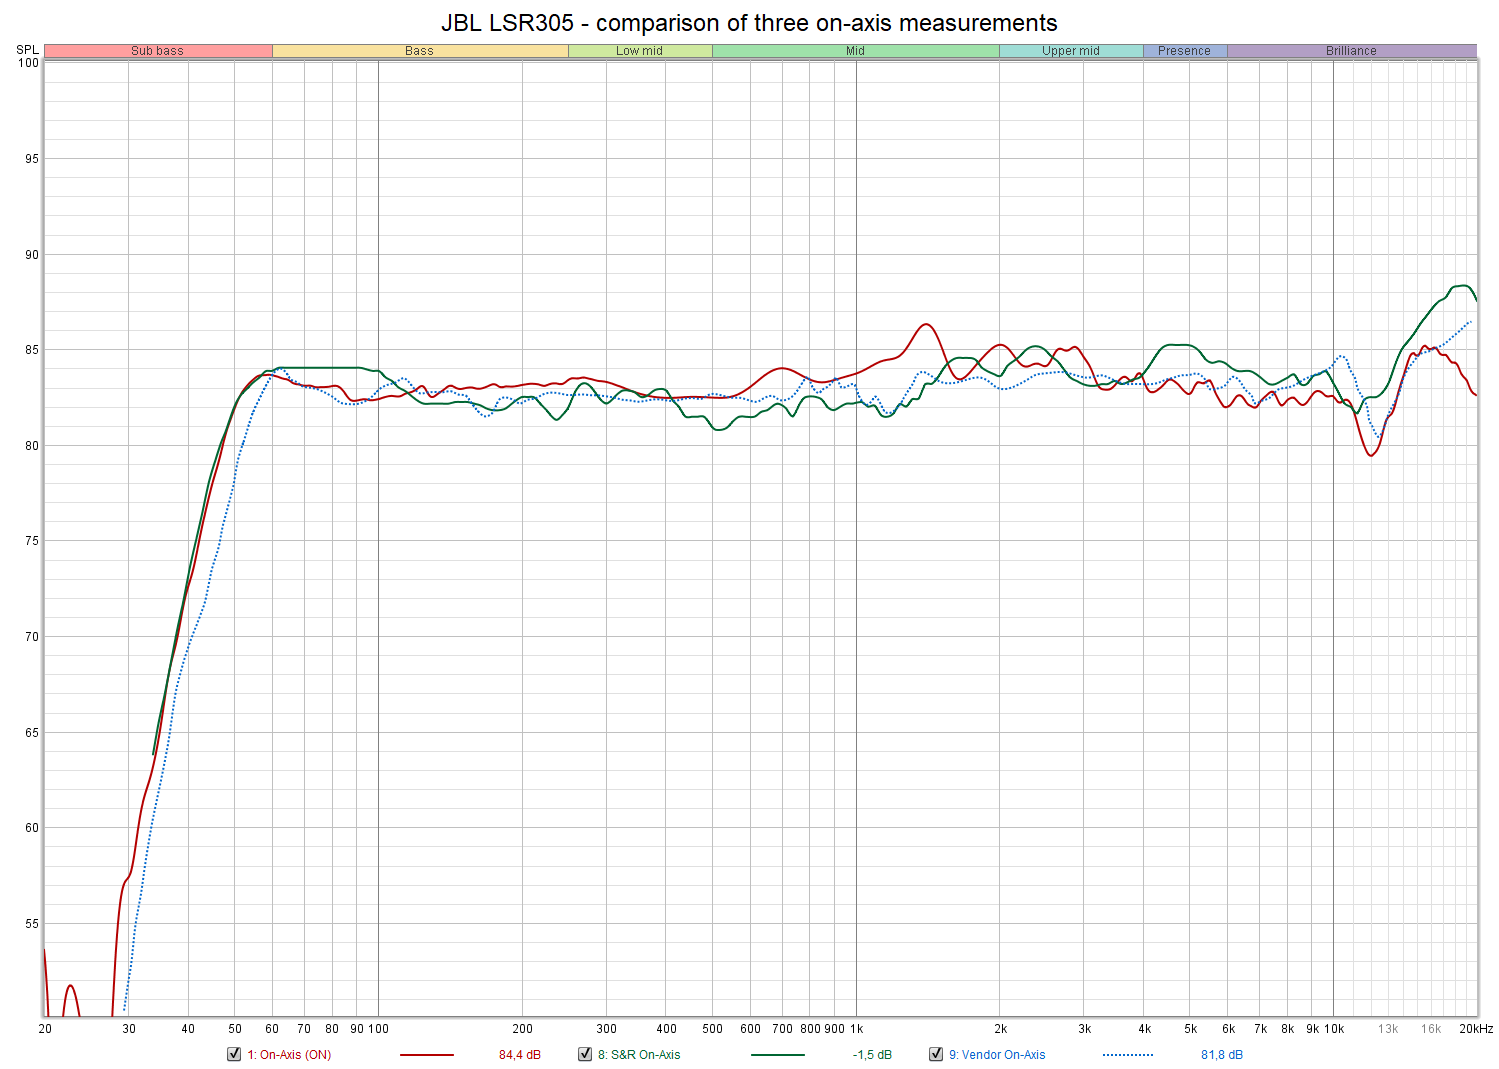 JBL LSR305 - comparison of three on-axis measurements.png